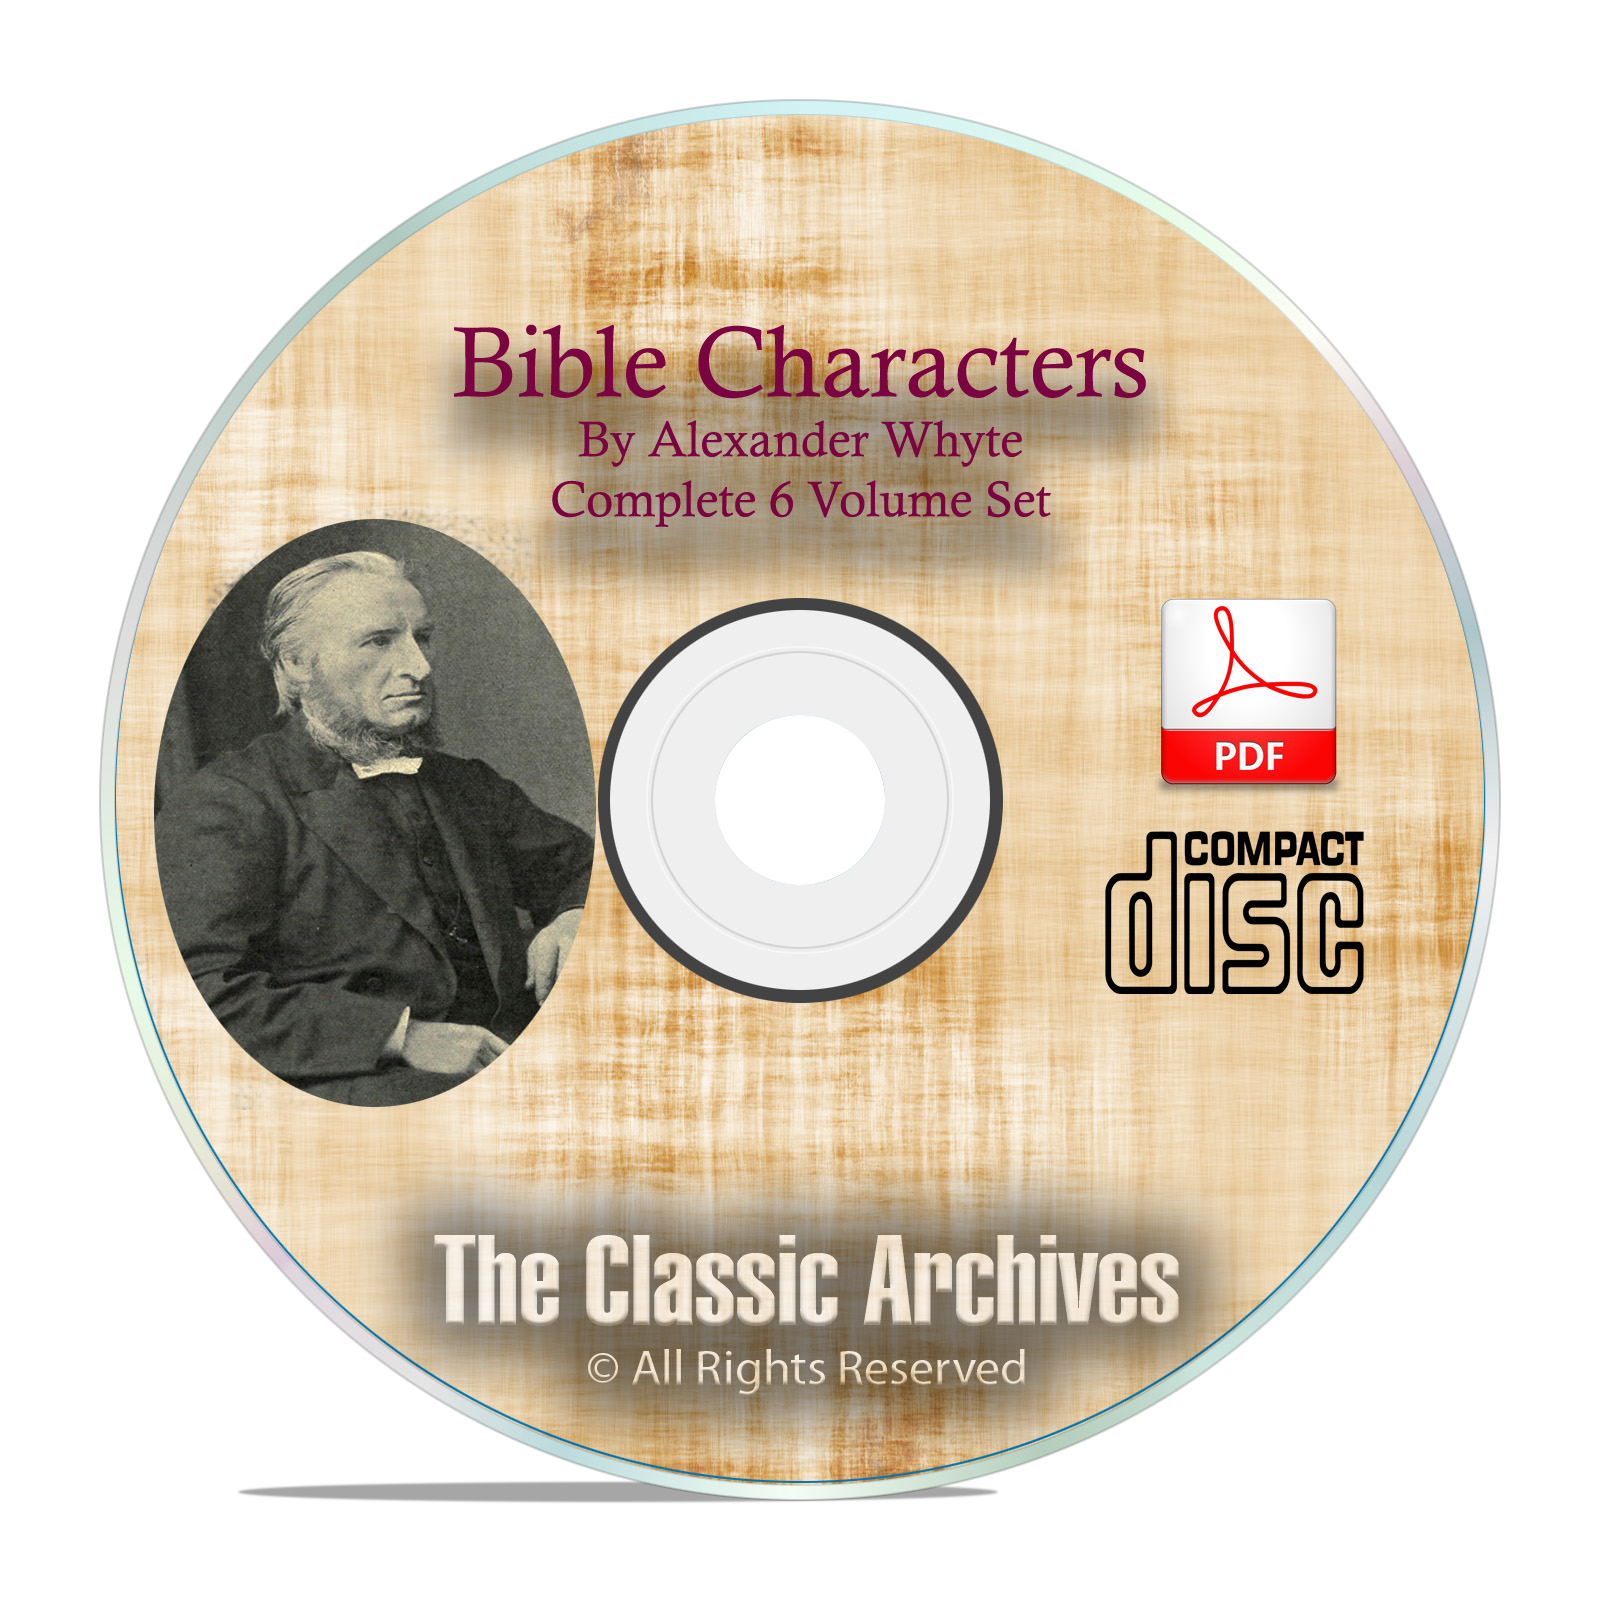 BIBLE CHARACTERS, by Alexander Whyte, Scripture Commentary, Full Set on CD